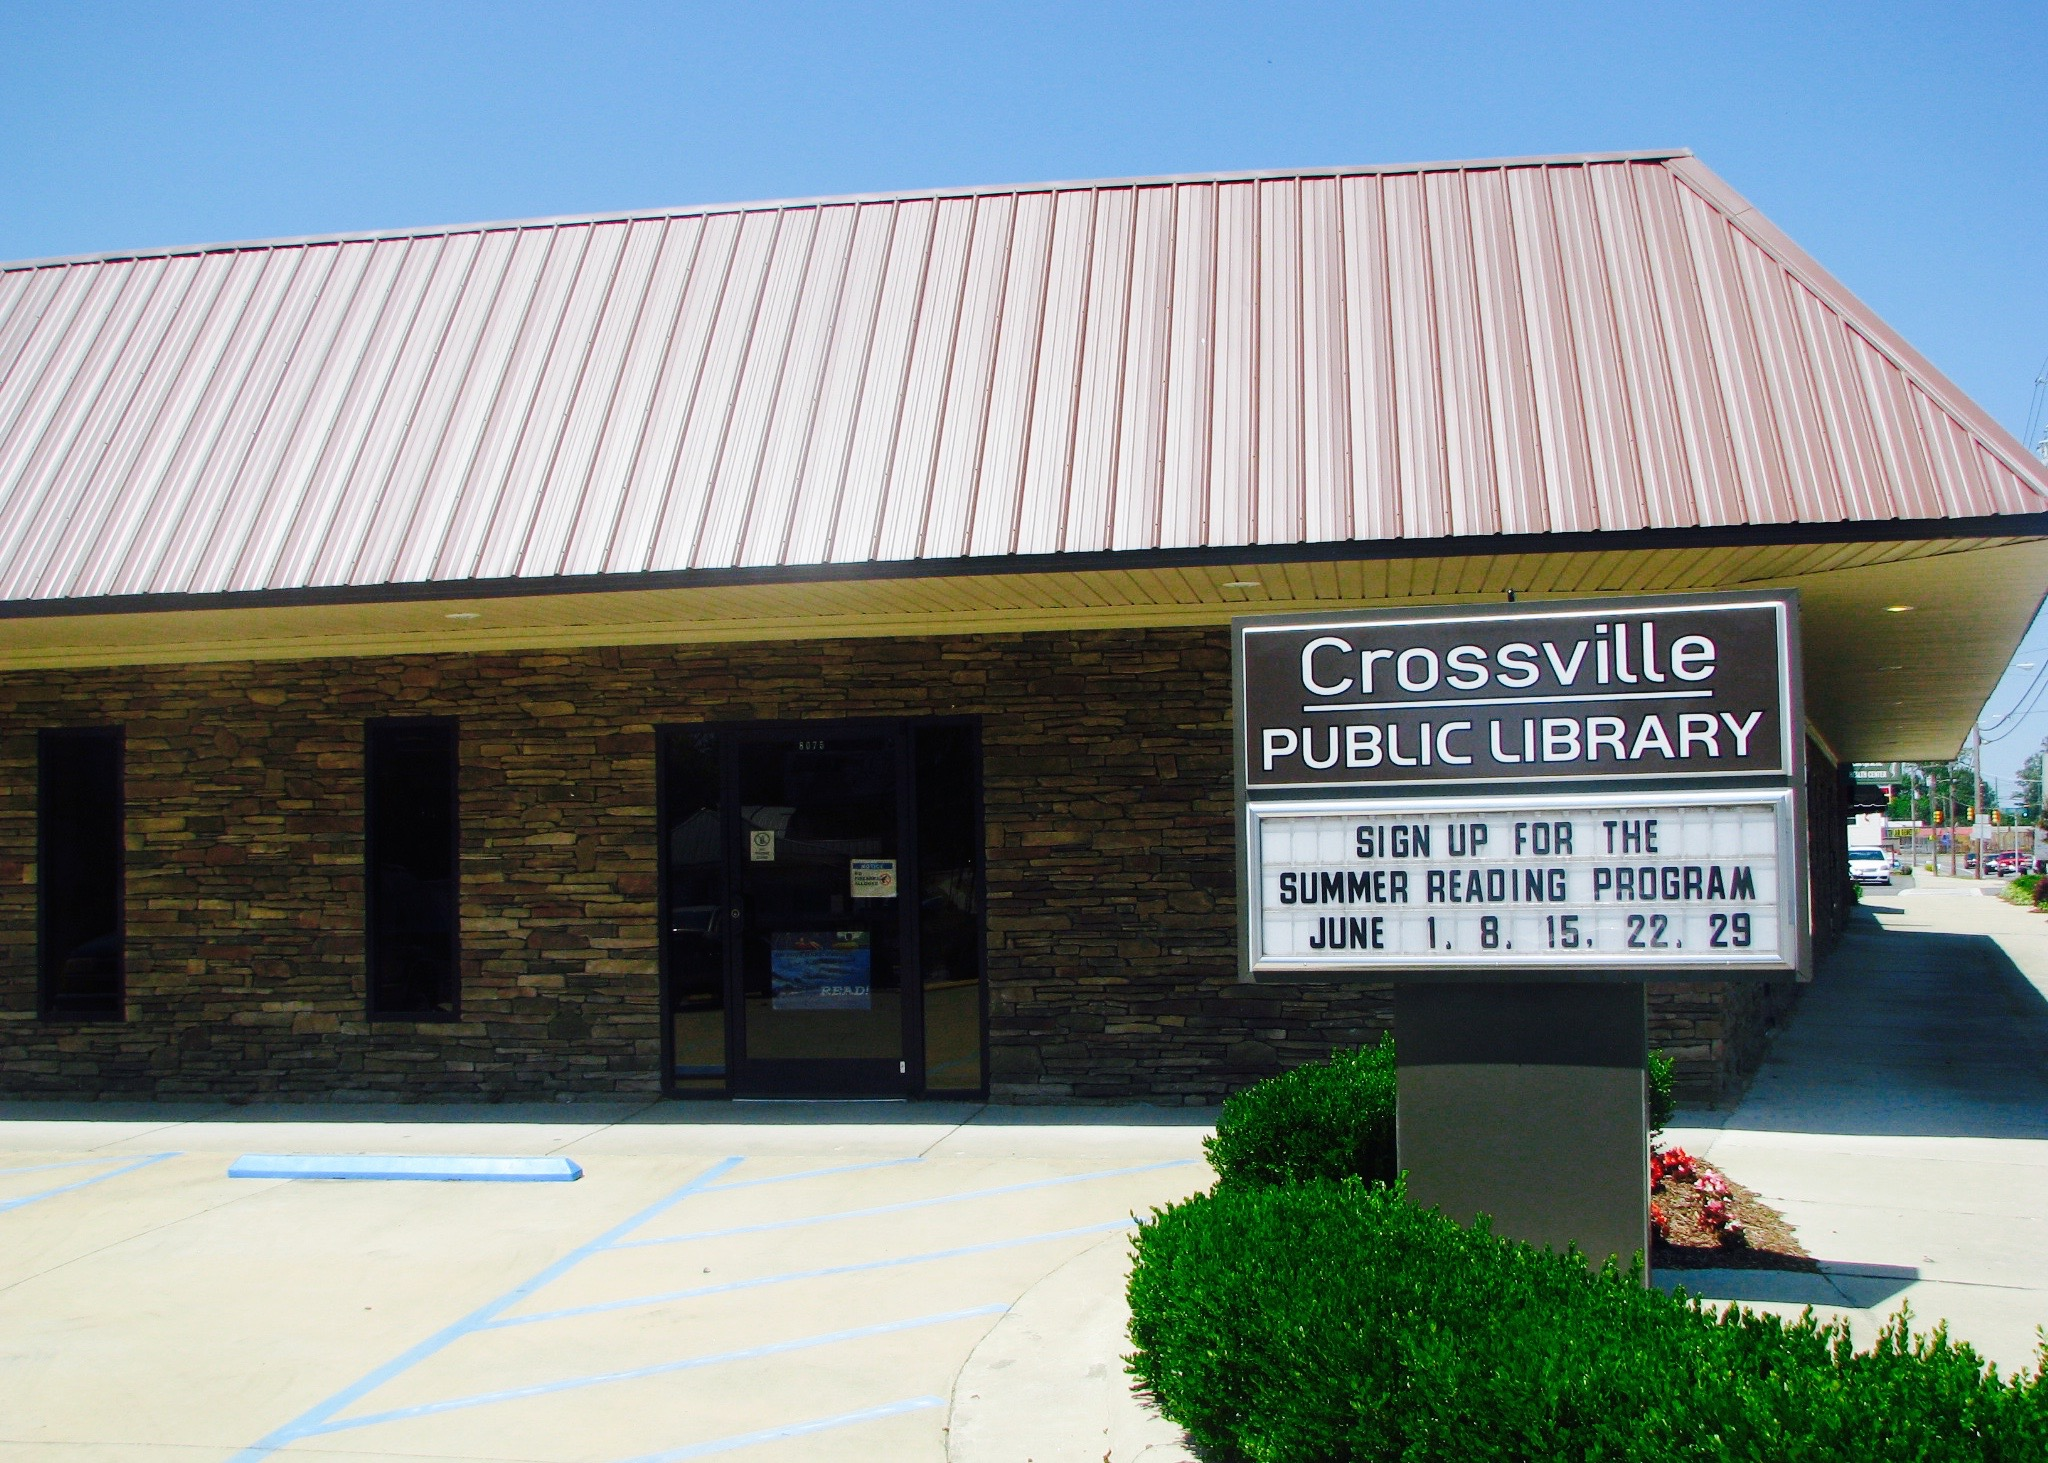 Crossville Library - Here you can learn all about our local public library and the programs they offer as well as a full catalog of the books that they have!